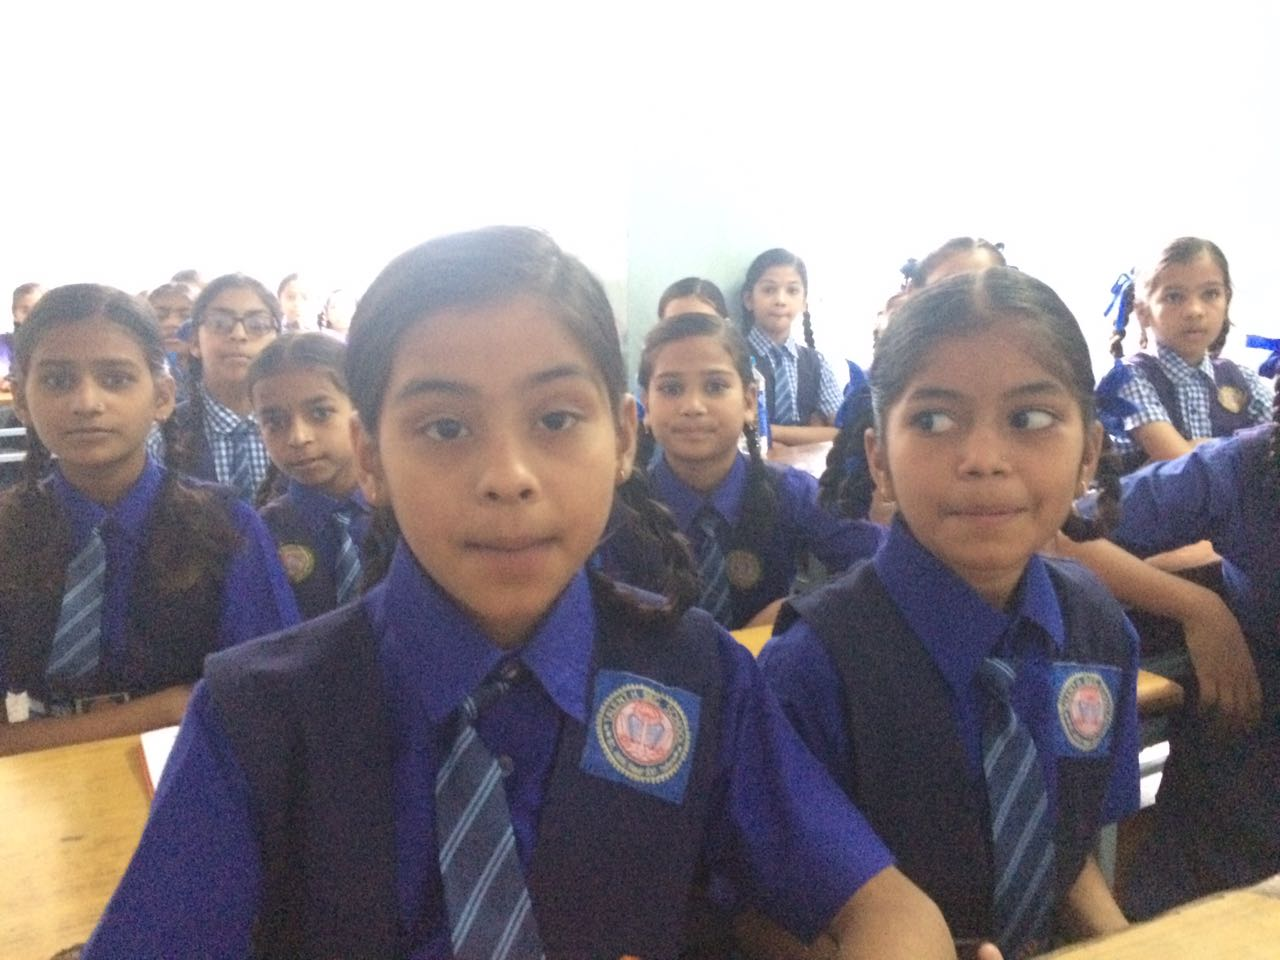 11th episode of Beti bachao Beti padhao aur use samjhao in talent higher sacondry school Sanyojak pushpa agrawal